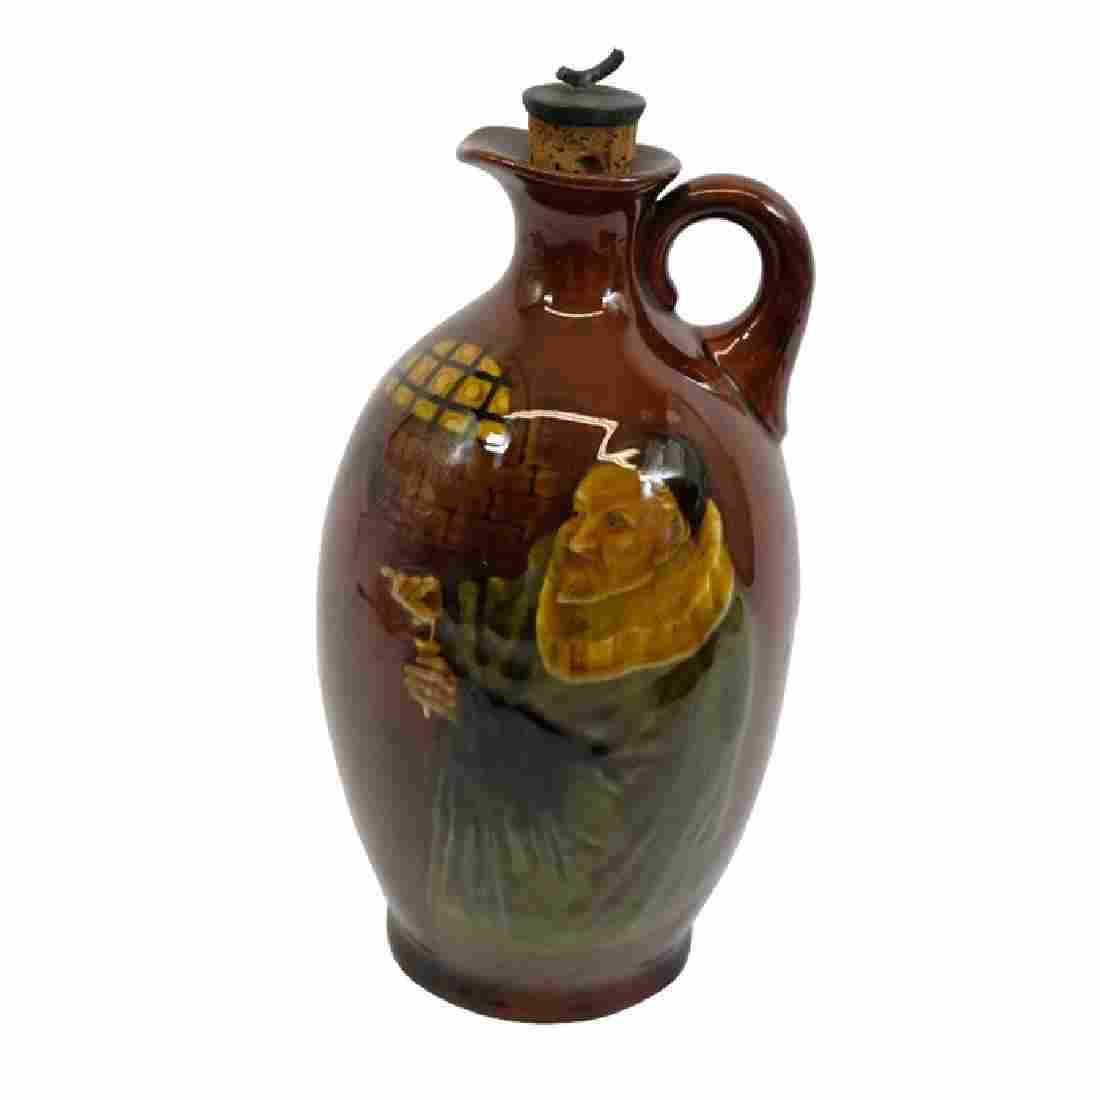 A Royal Doulton Kingsware Apothecary whisky jug, ovoid